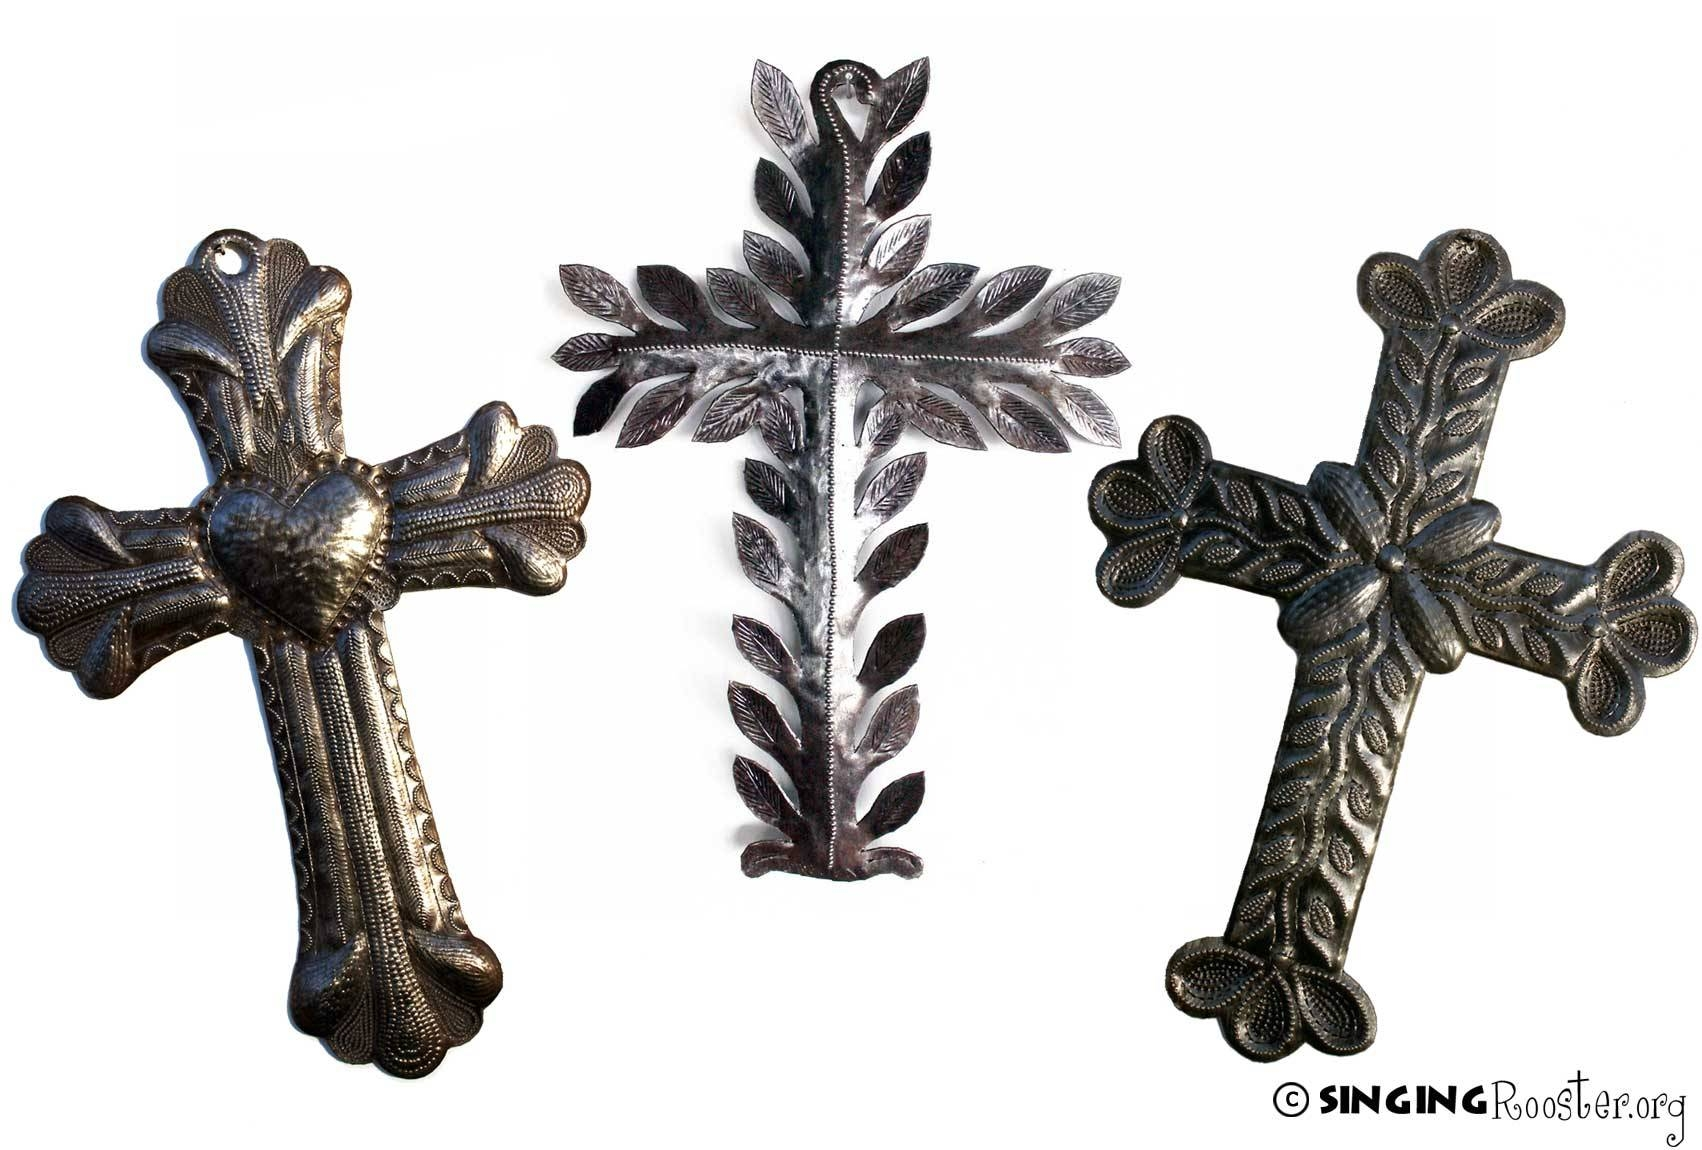 Exquisite Metal Crosses, Religious Art Handmade From Haiti Intended For Newest Religious Metal Wall Art (View 9 of 20)